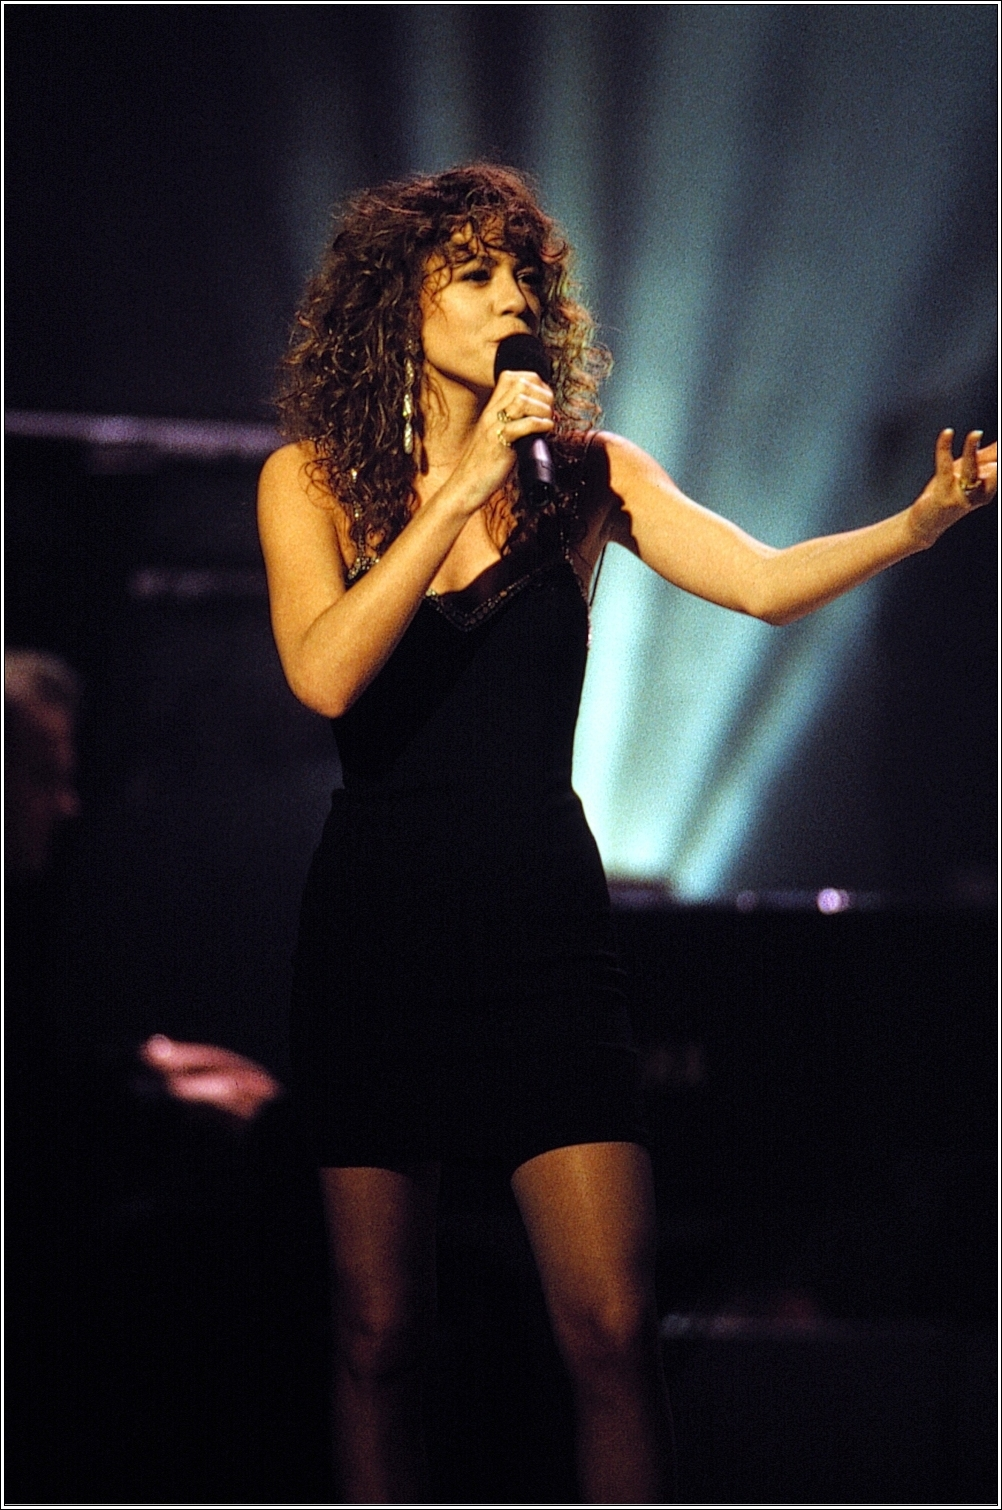 54504_mc_25021991_grammy_awards_033_122_46lo.jpg